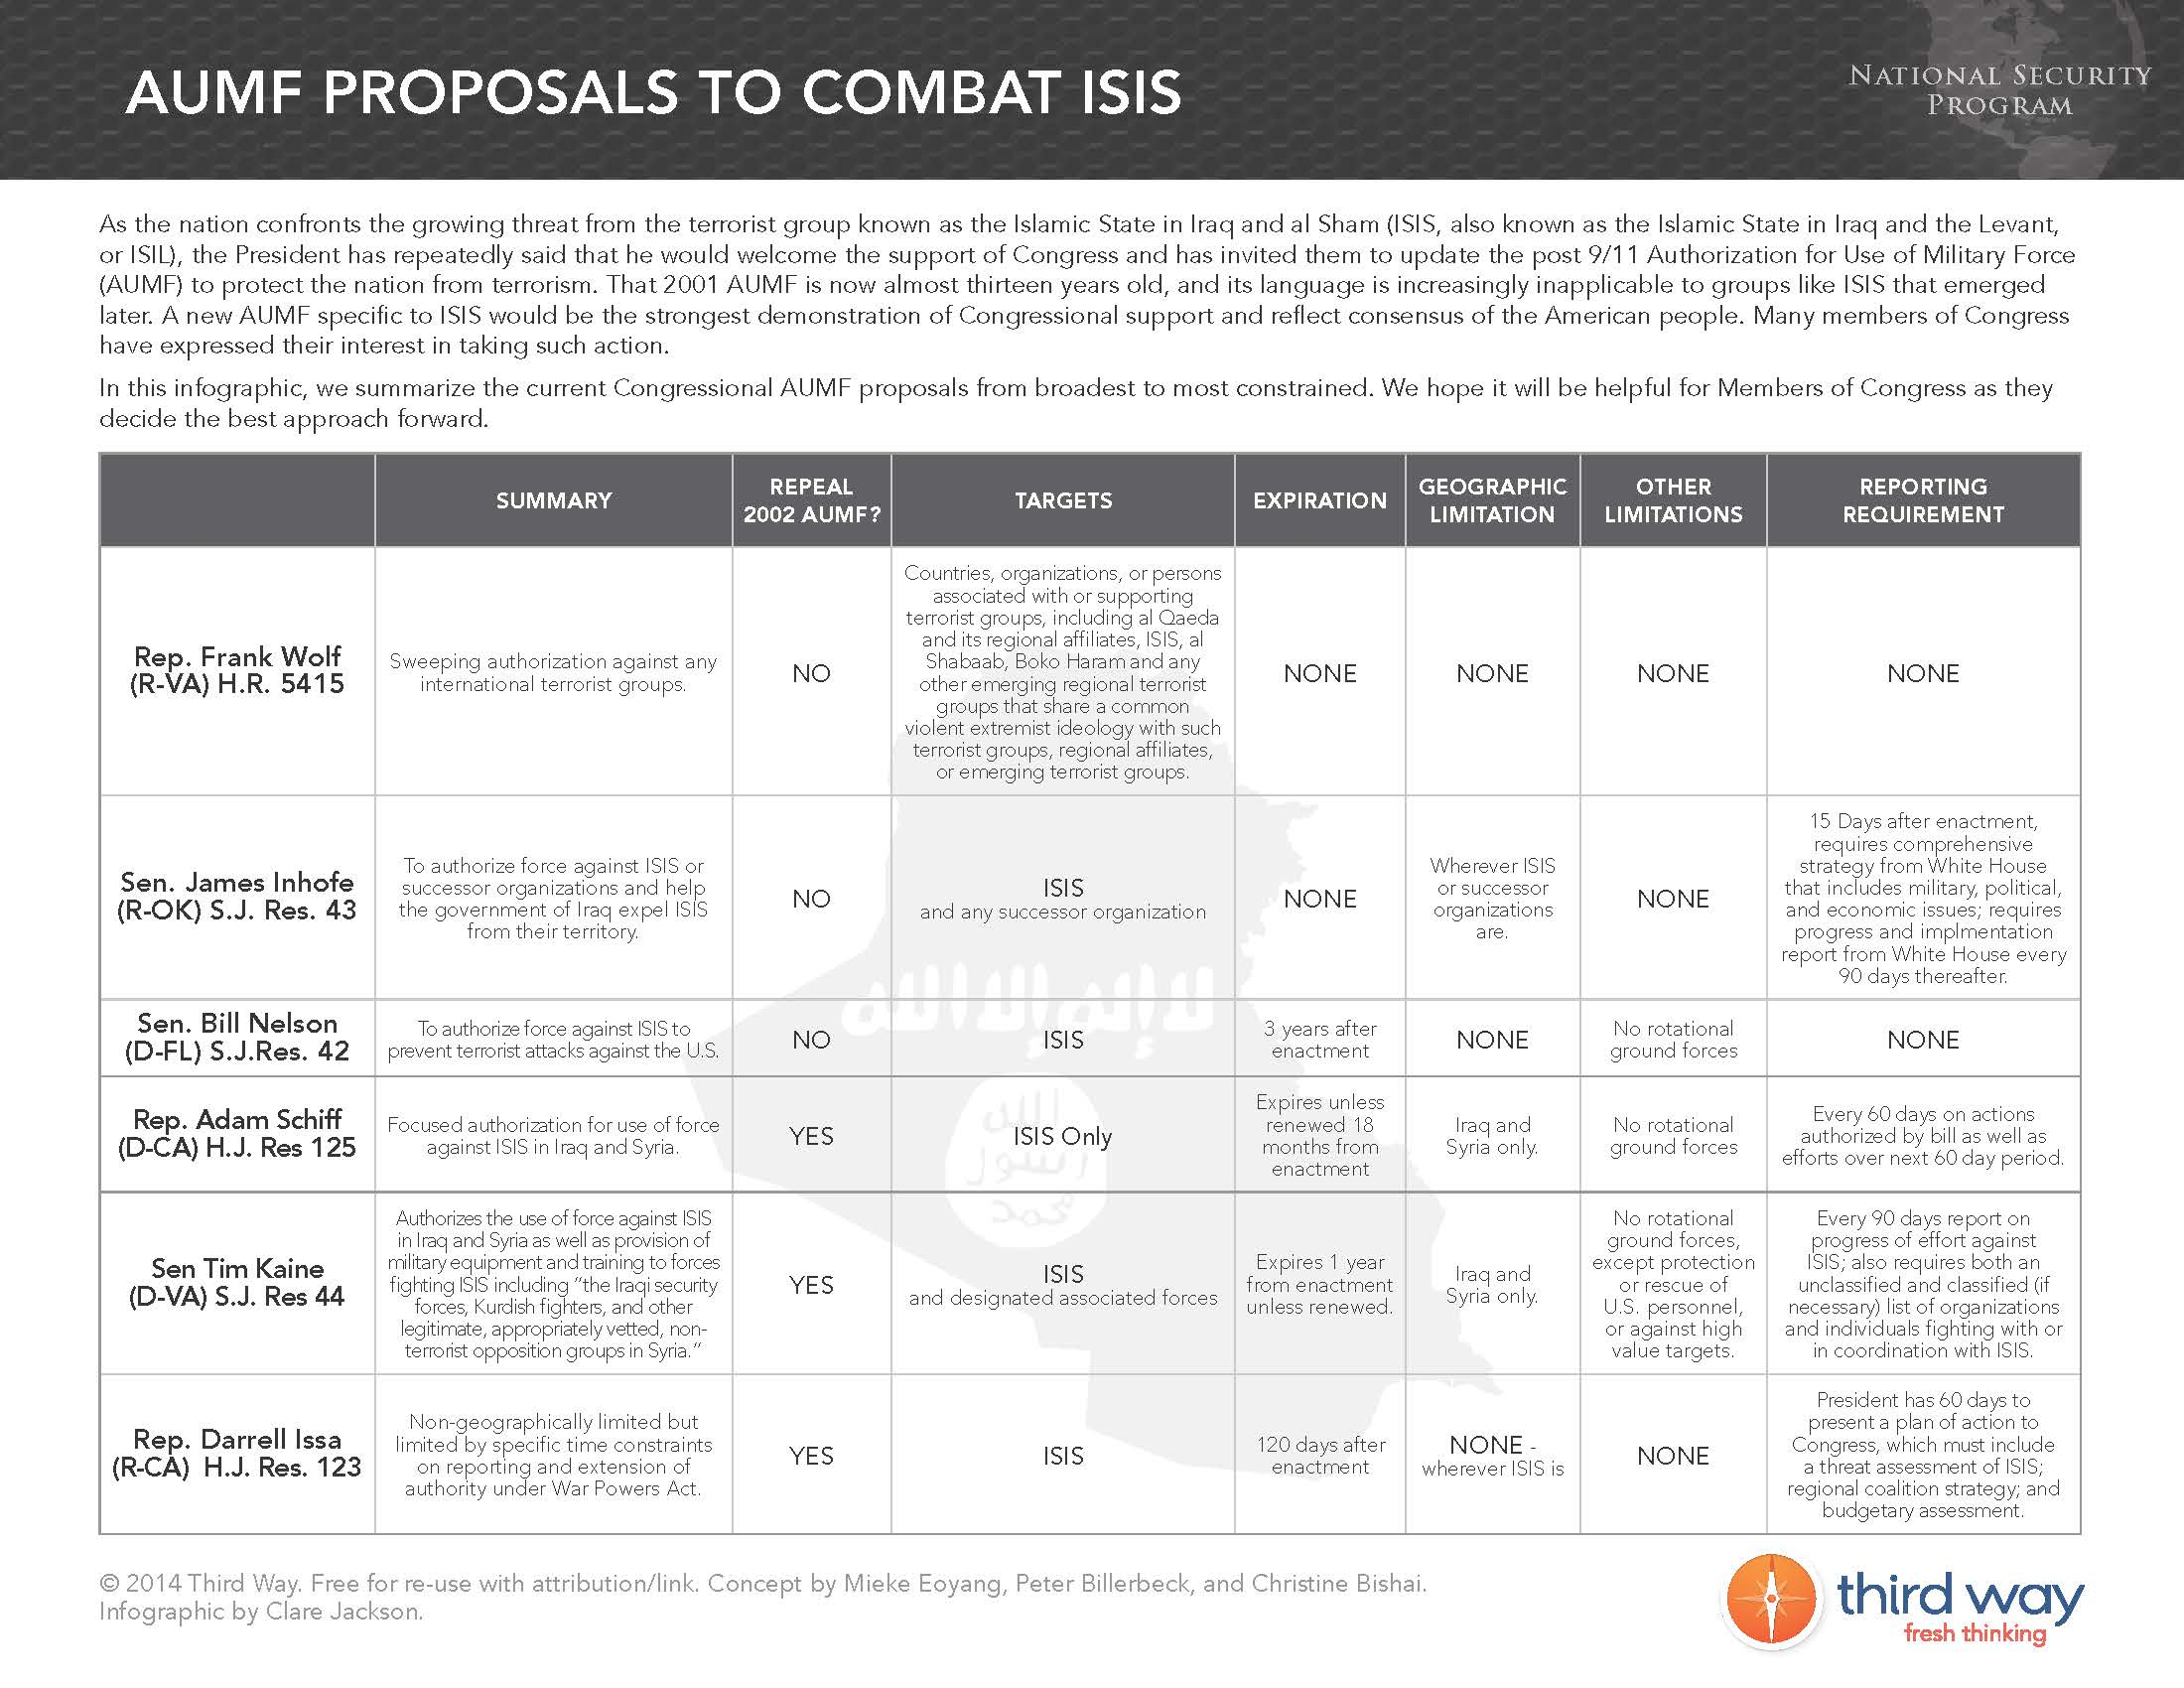 AUMF Proposals to Combat Isis